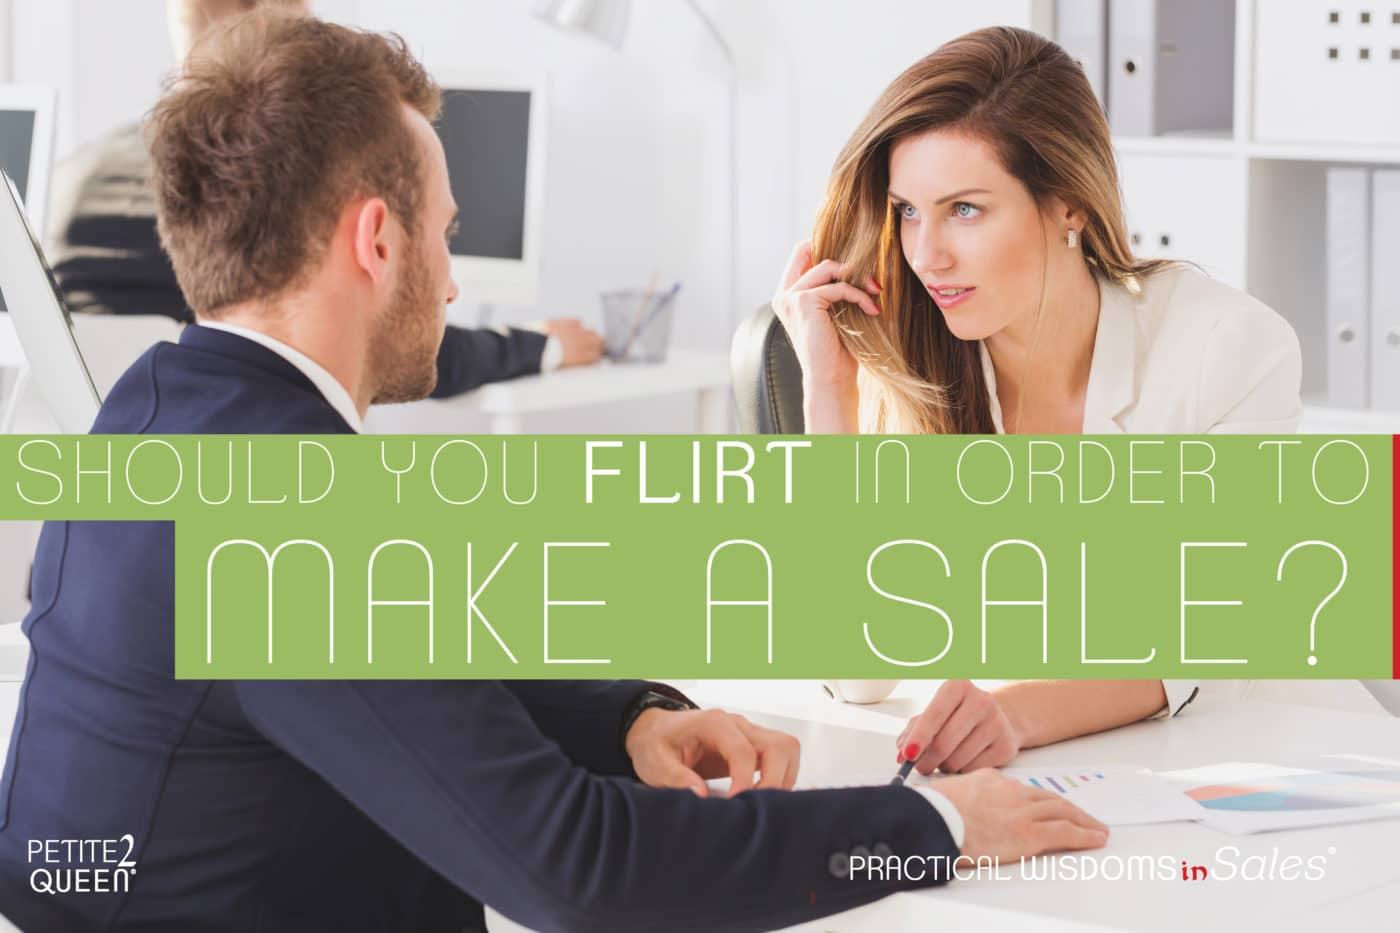 Should You Flirt in Order to Make a Sale?